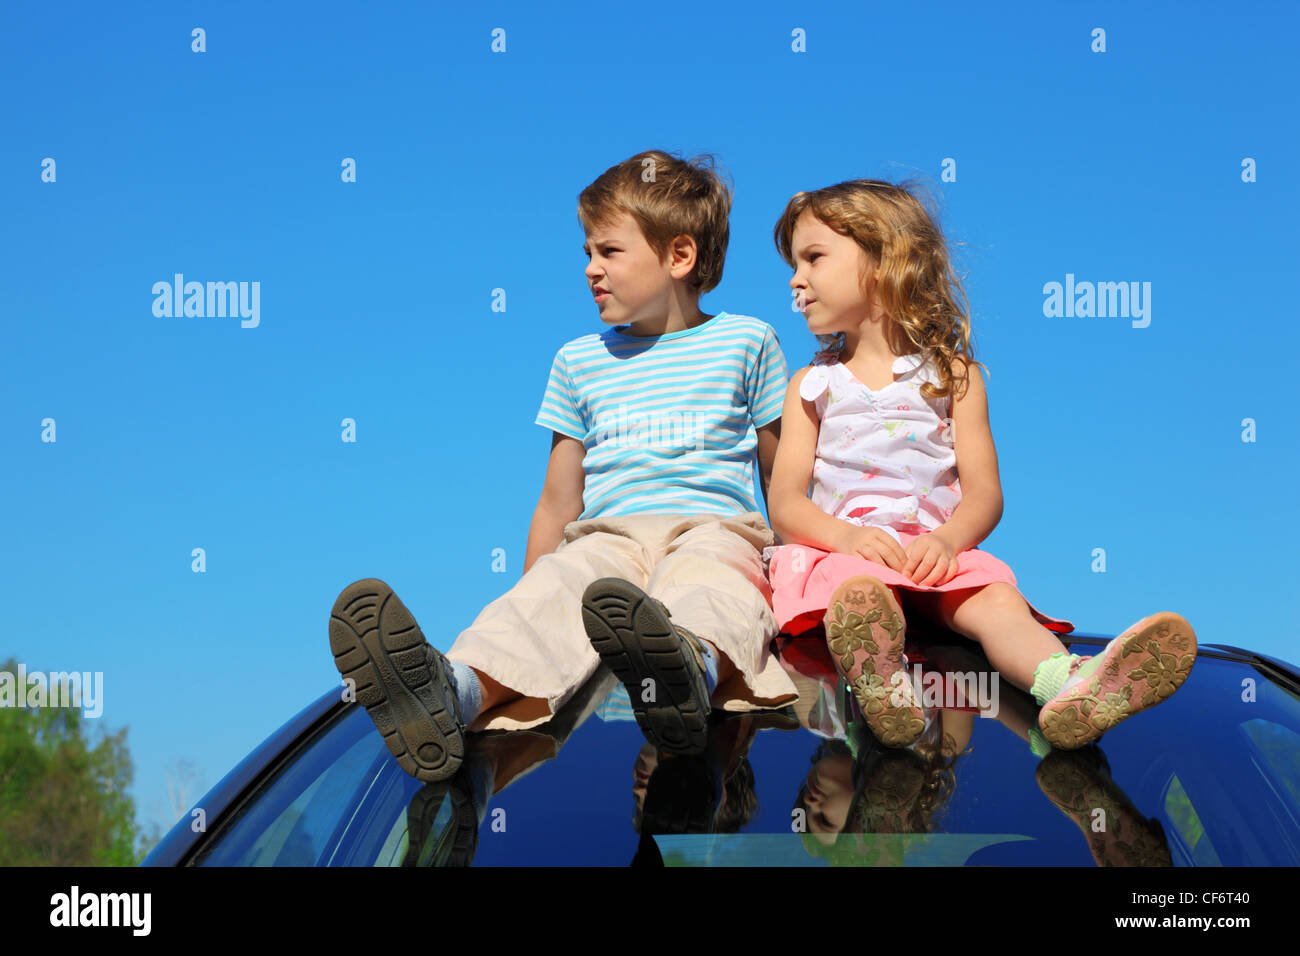 little boy and girl sitting on car roof on blue sky, looking to left side - Stock Image